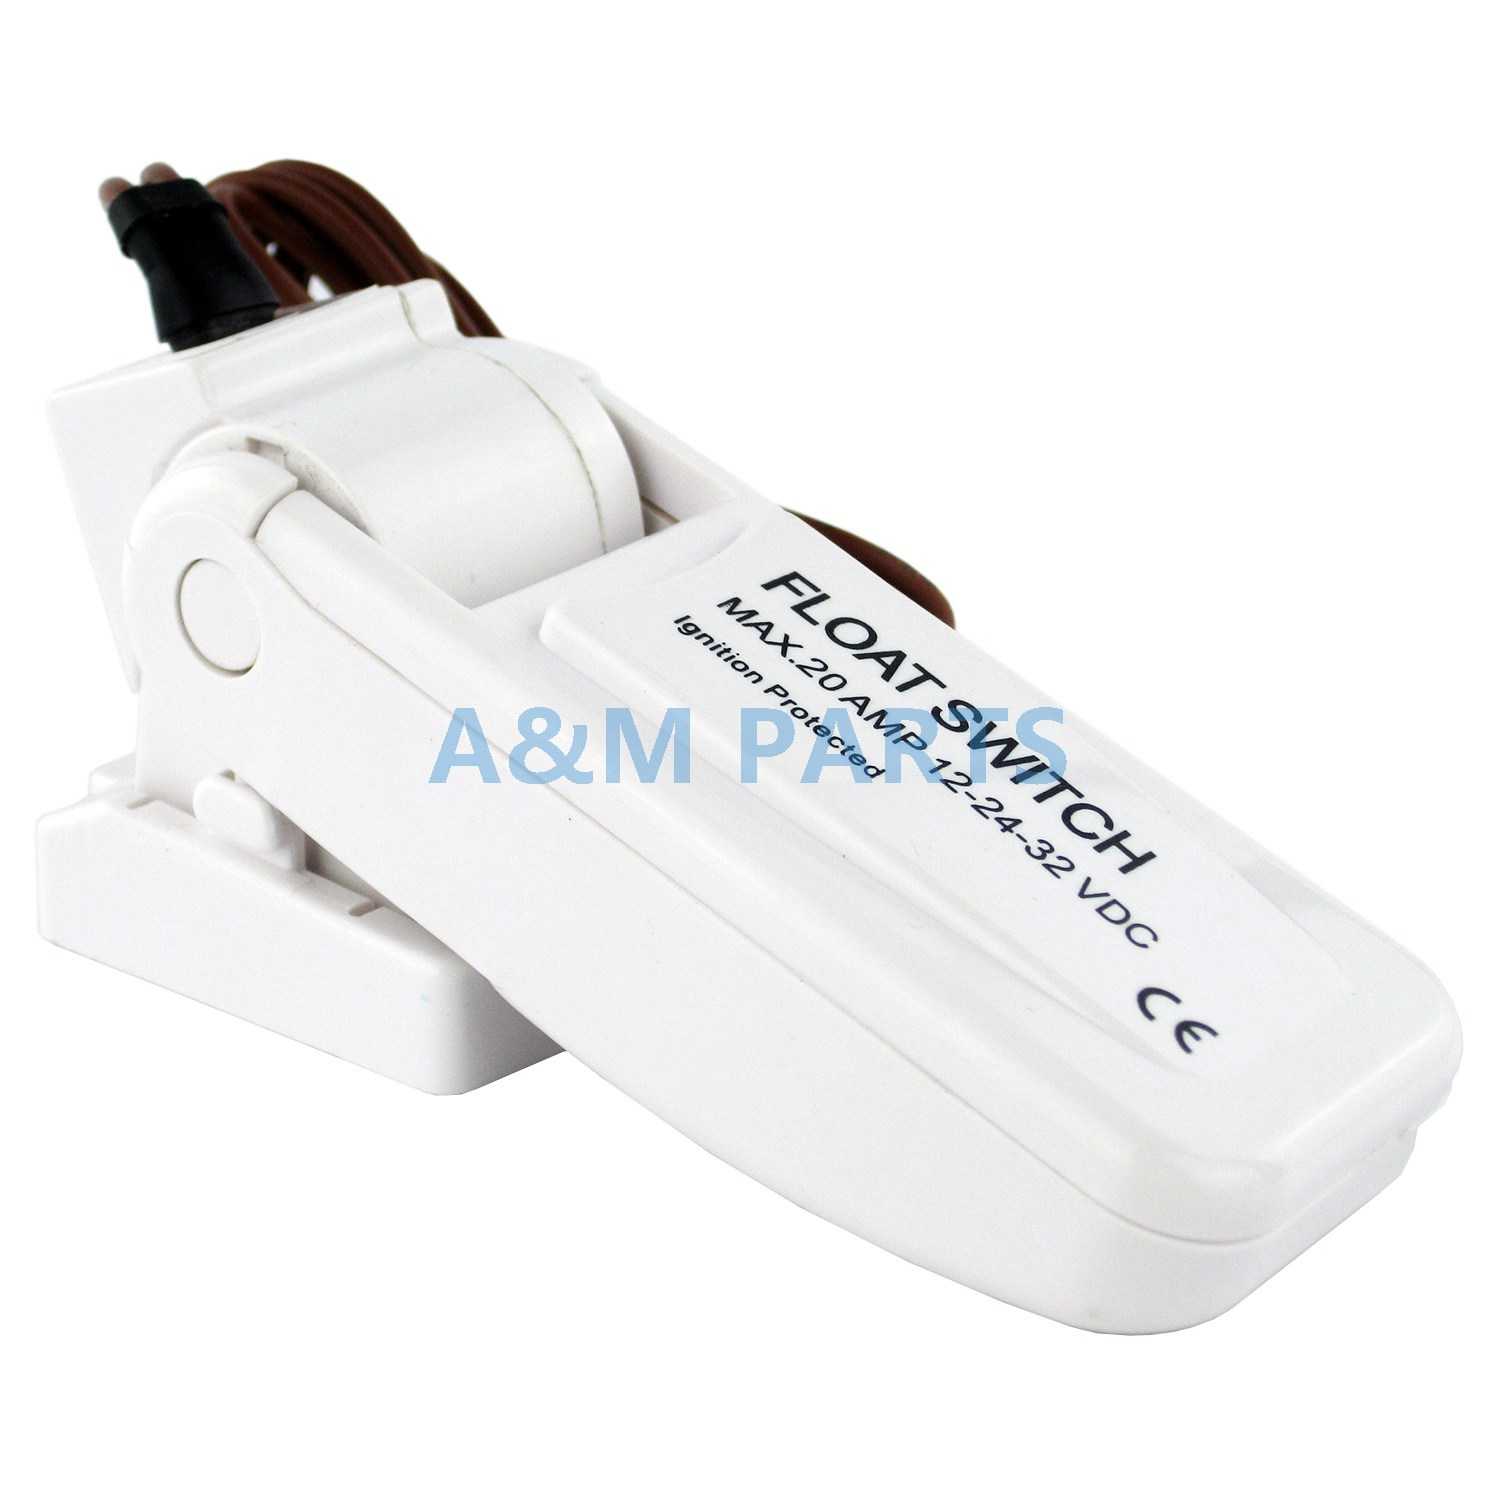 Boat Float Switch for Bilge Pump 12V Marine Submersible Pump Automatic Floating Switch rule eco switch ecologically sound automatic bilge switch